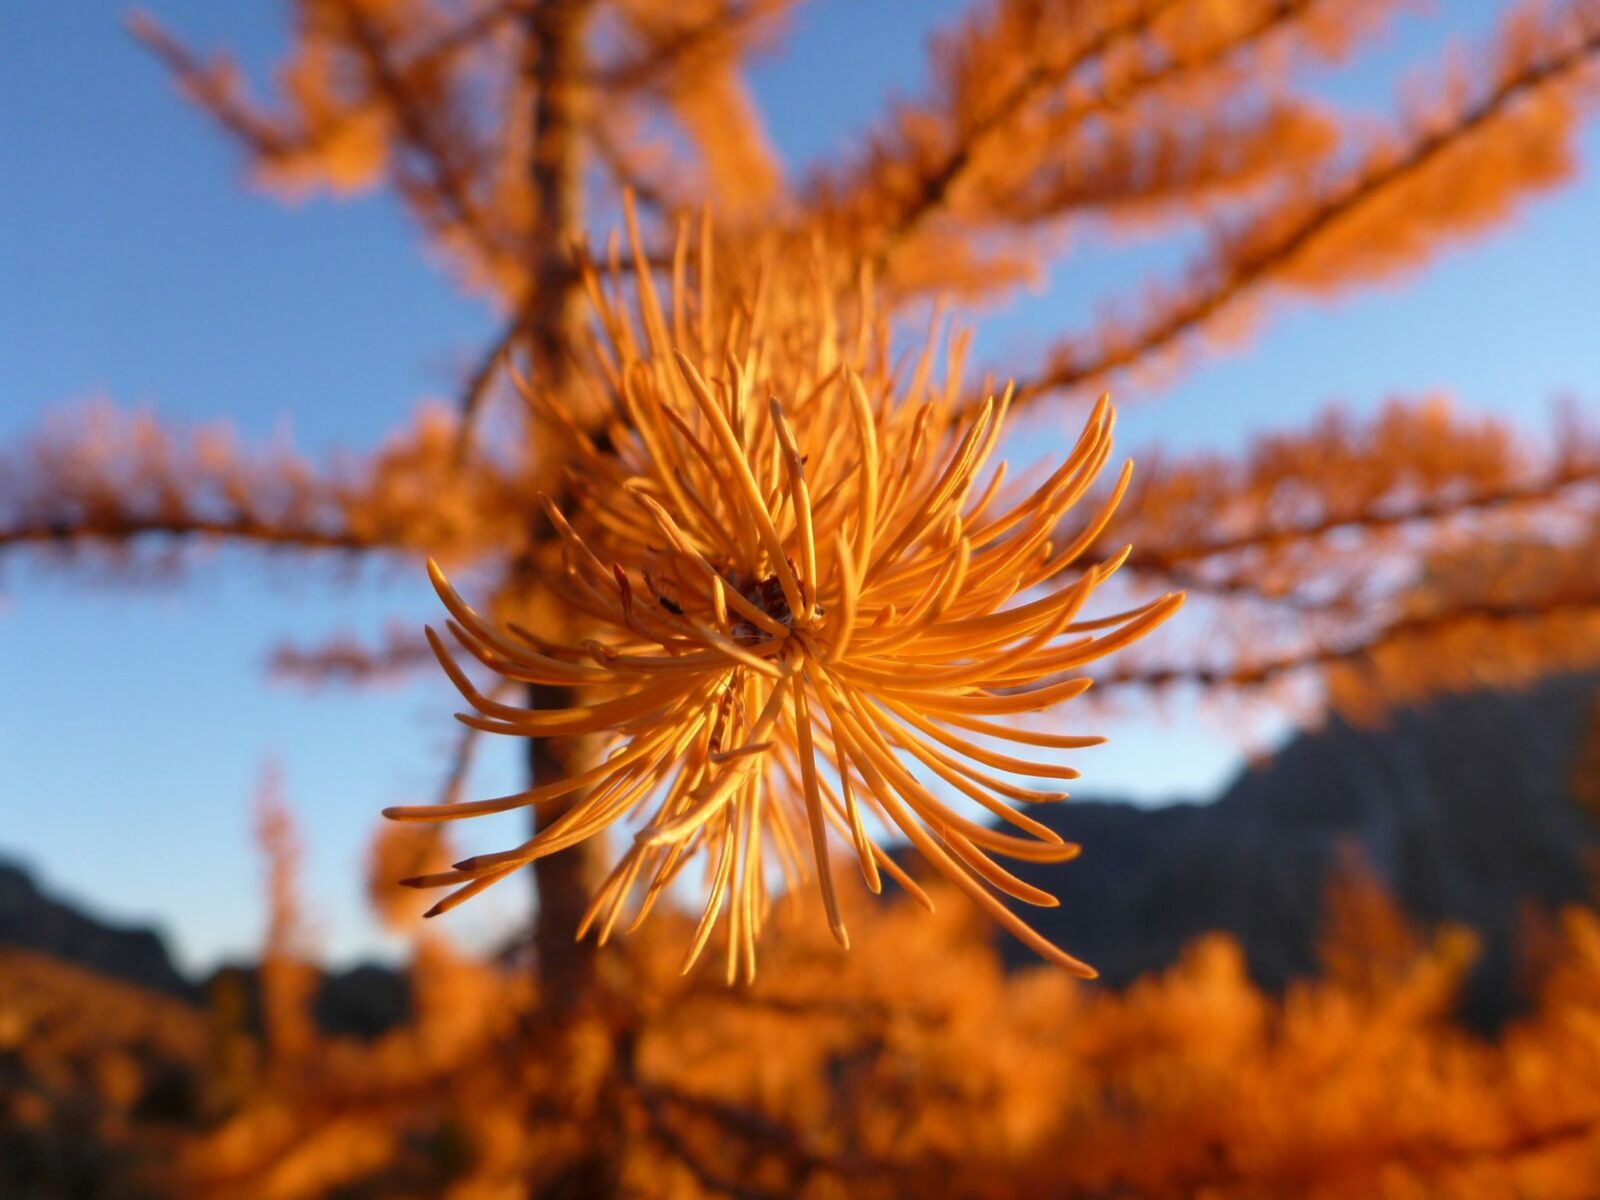 a close up of a the end of a golden larch branch